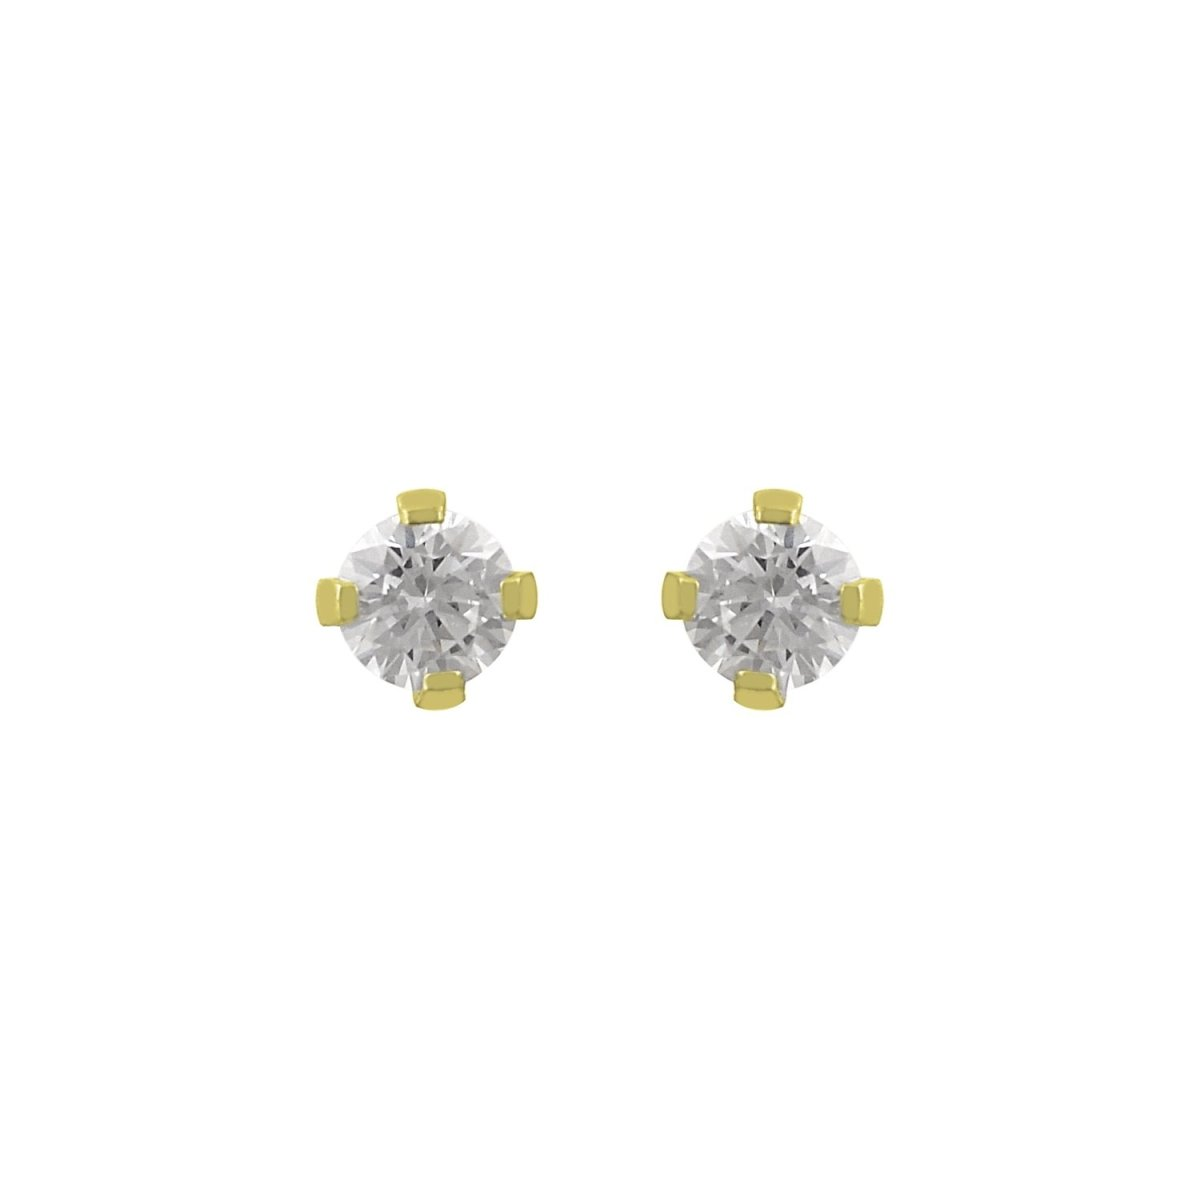 Earrings SK3502G Made of Gold K14 with Zircon - Goldy Jewelry Store